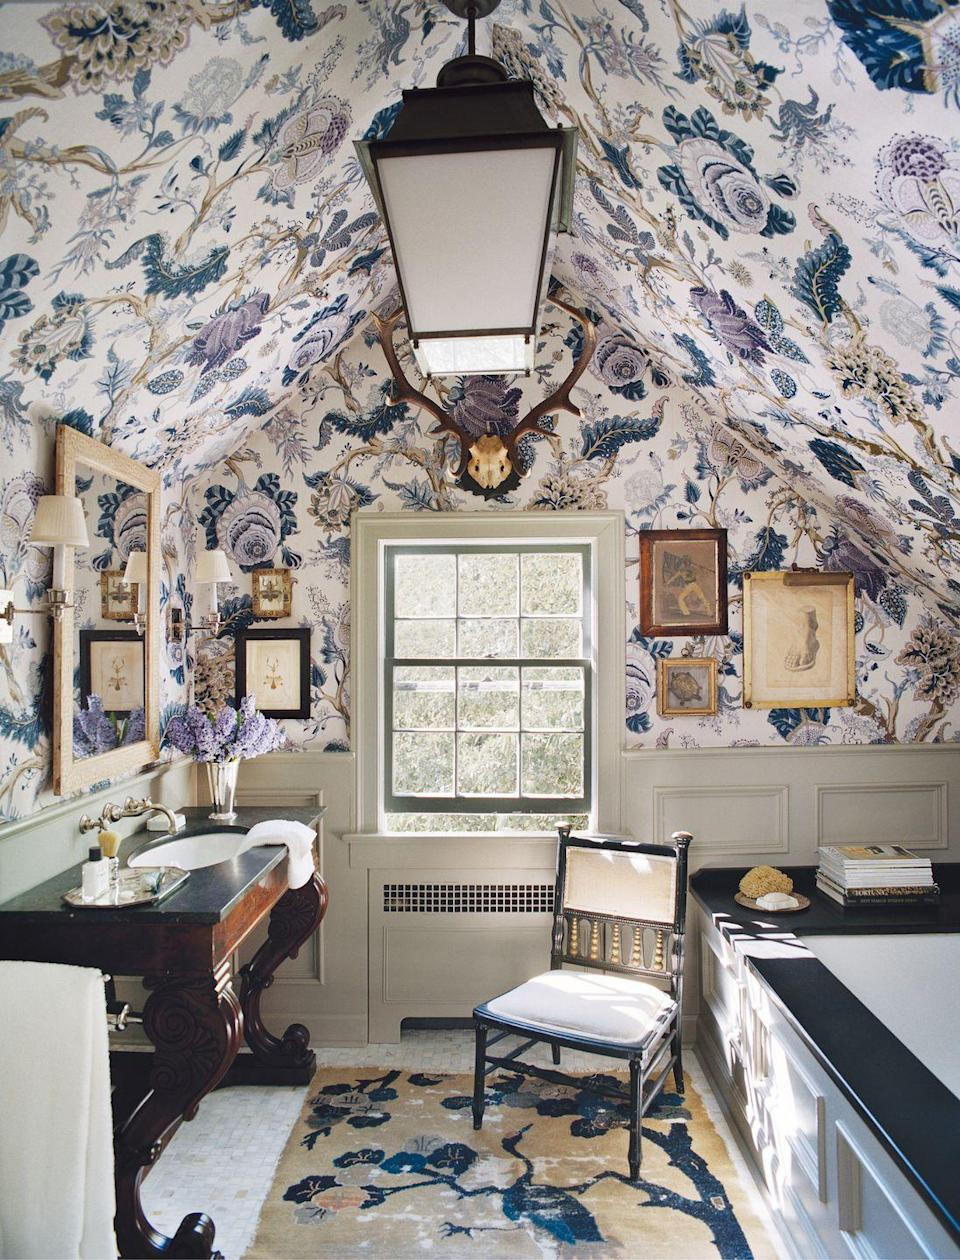 """<p>If you think chintz never went out of style, you will most definitely fall in the classic camp. Always inspired and never stuffy, these more traditional spaces favor a more fanciful yet livable look. A bountiful <a href=""""https://www.veranda.com/home-decorators/a33301568/tree-of-life-pattern-history/"""" rel=""""nofollow noopener"""" target=""""_blank"""" data-ylk=""""slk:tree-of-life pattern"""" class=""""link rapid-noclick-resp"""">tree-of-life pattern</a> (Indian Abre) makes quite the statement within this quaint bathroom. </p>"""